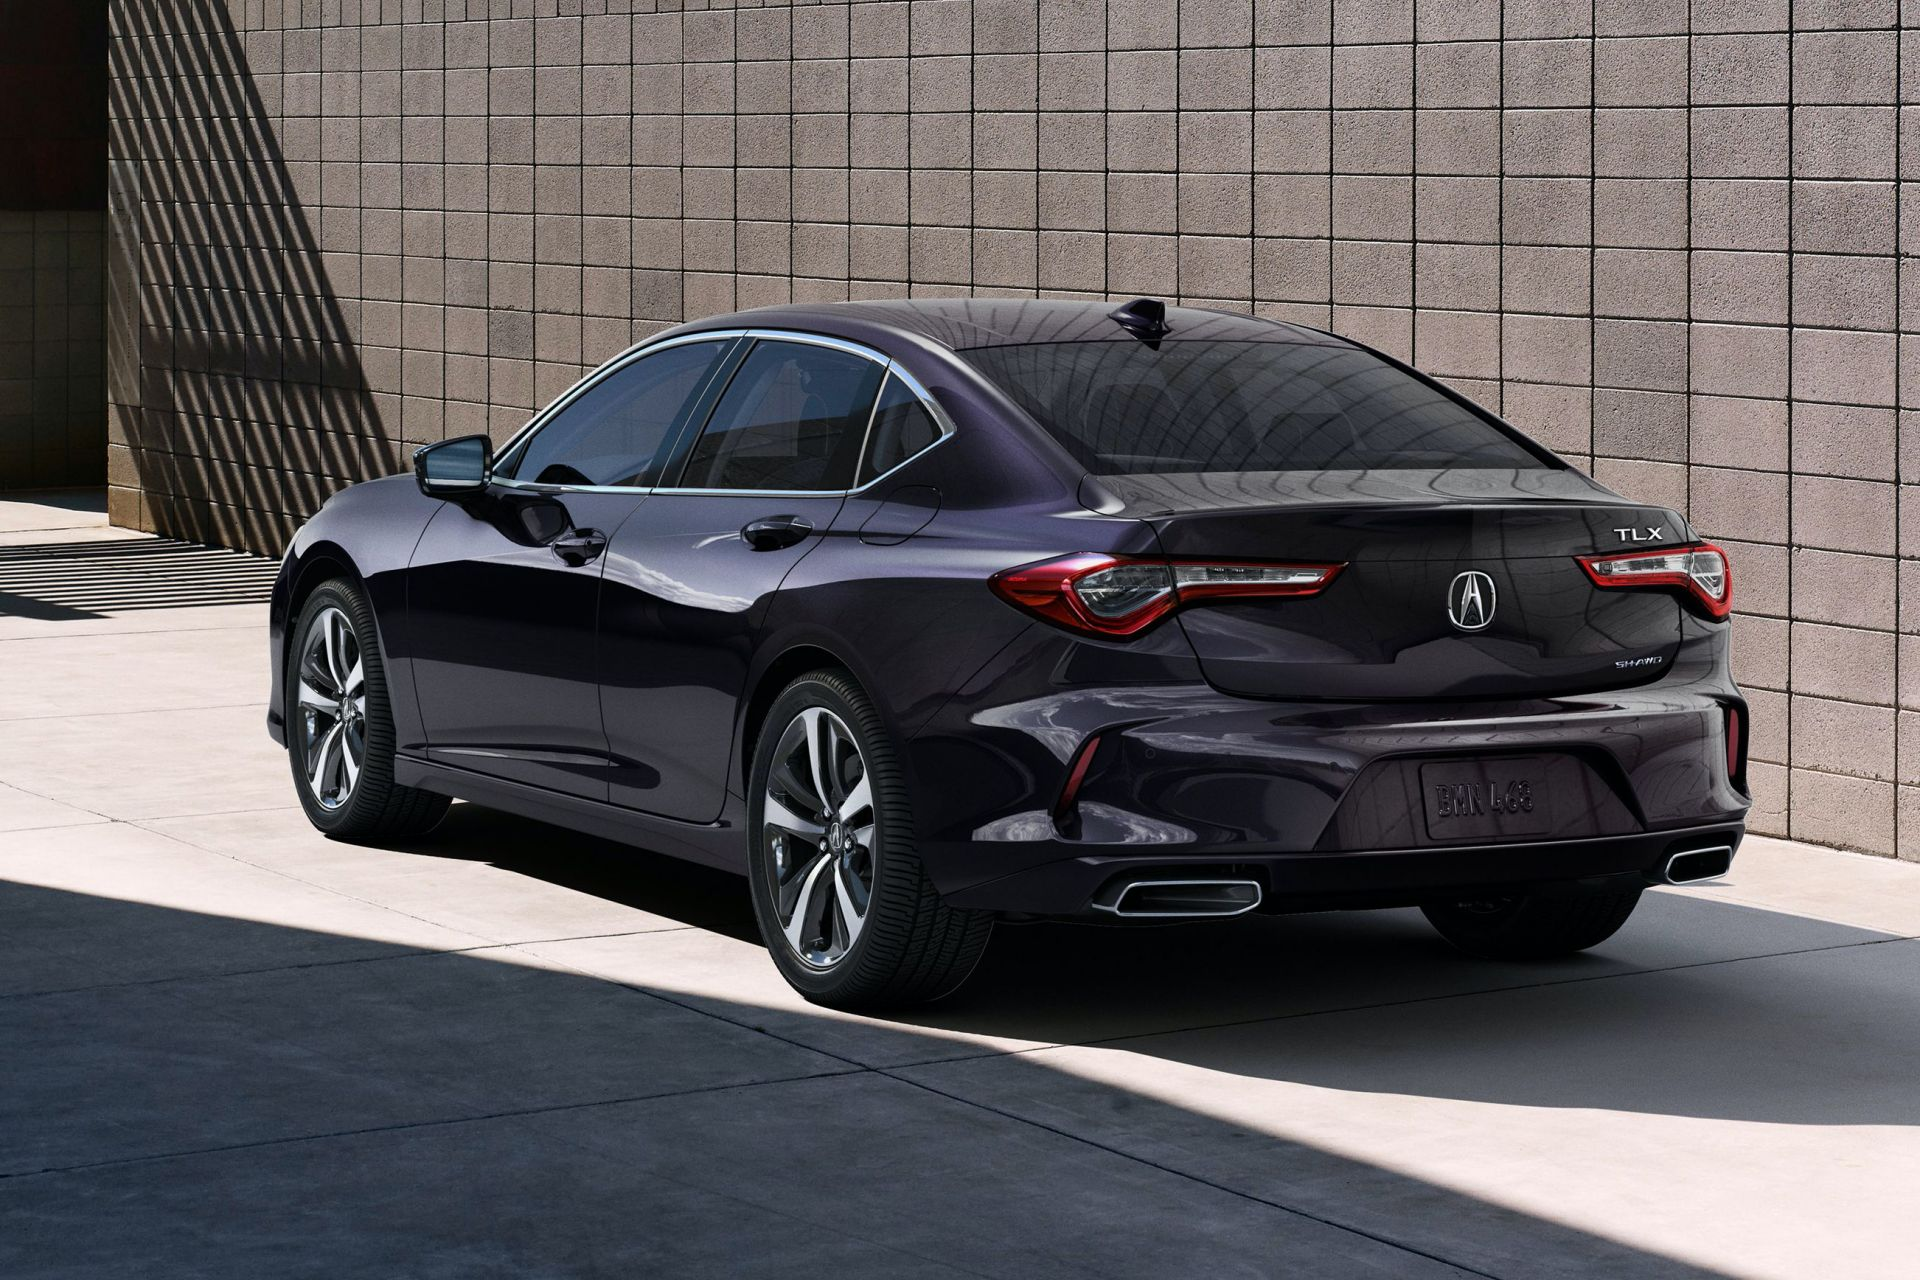 2021 Acura TLX Goes on Sale from $37,500 With 2.0-Liter ...